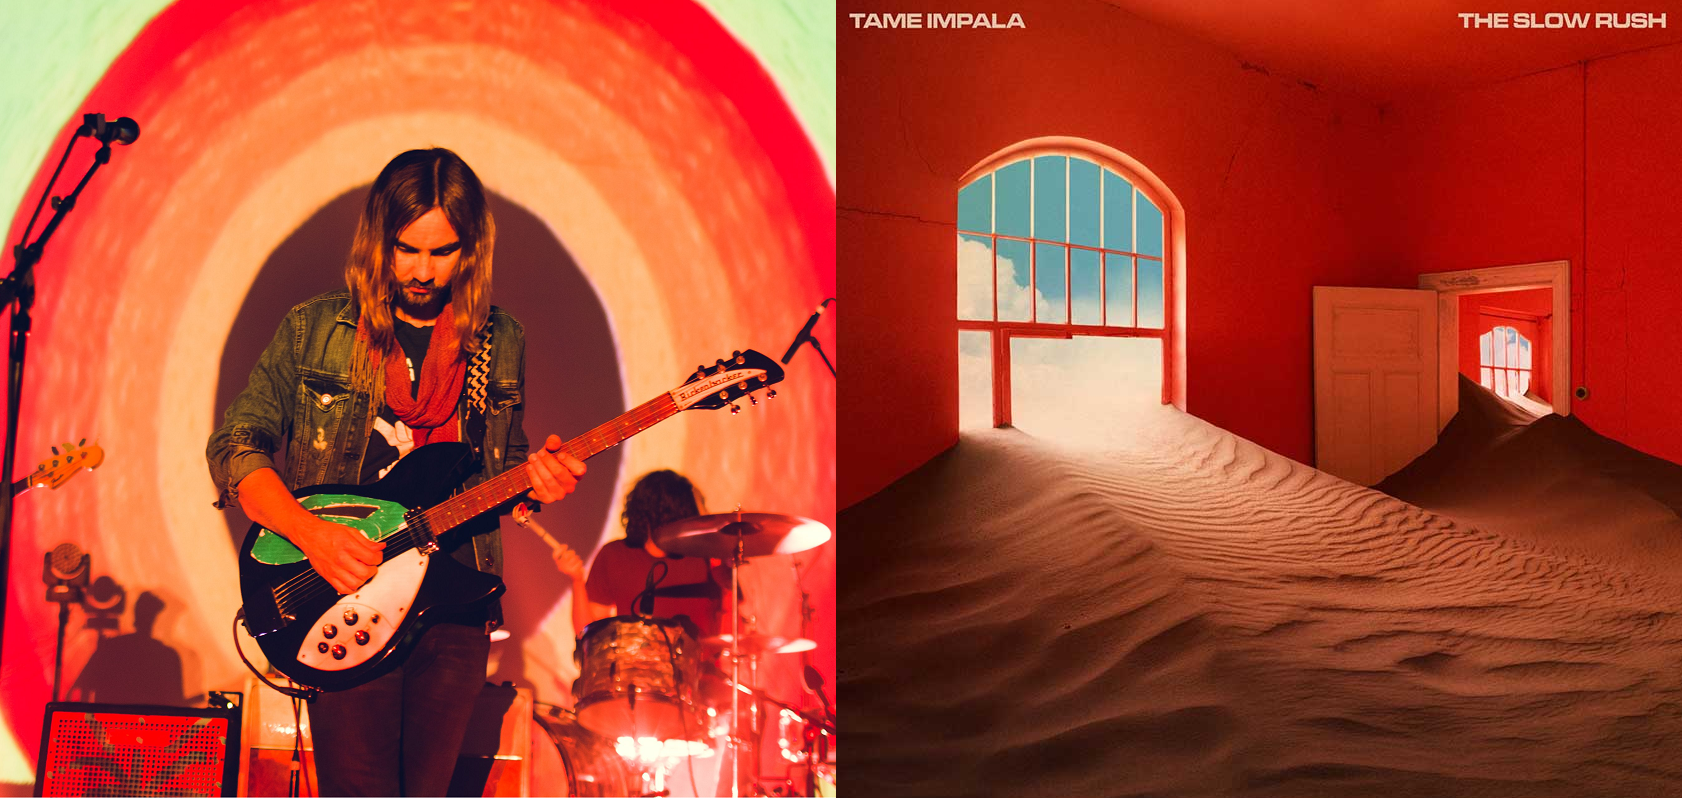 El lado oscuro de la pista: Tame Impala lanzó 'It Might Be Time'